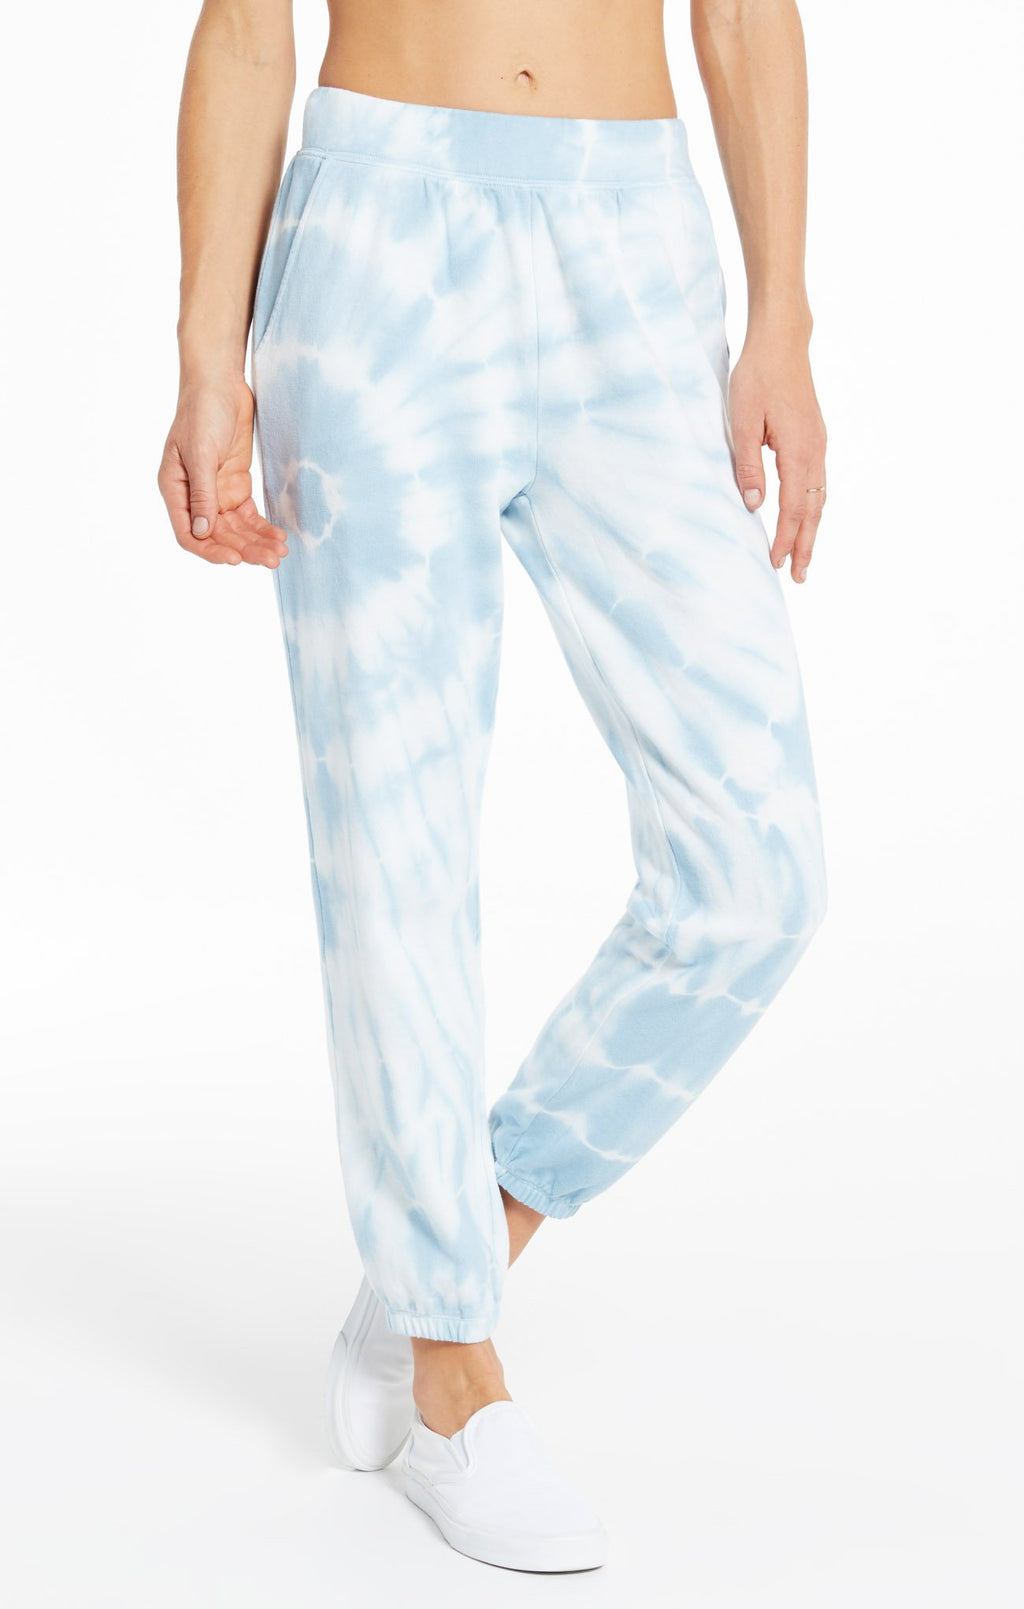 Z Supply Emery Spiral Tie-Dye Jogger in Blue Agave